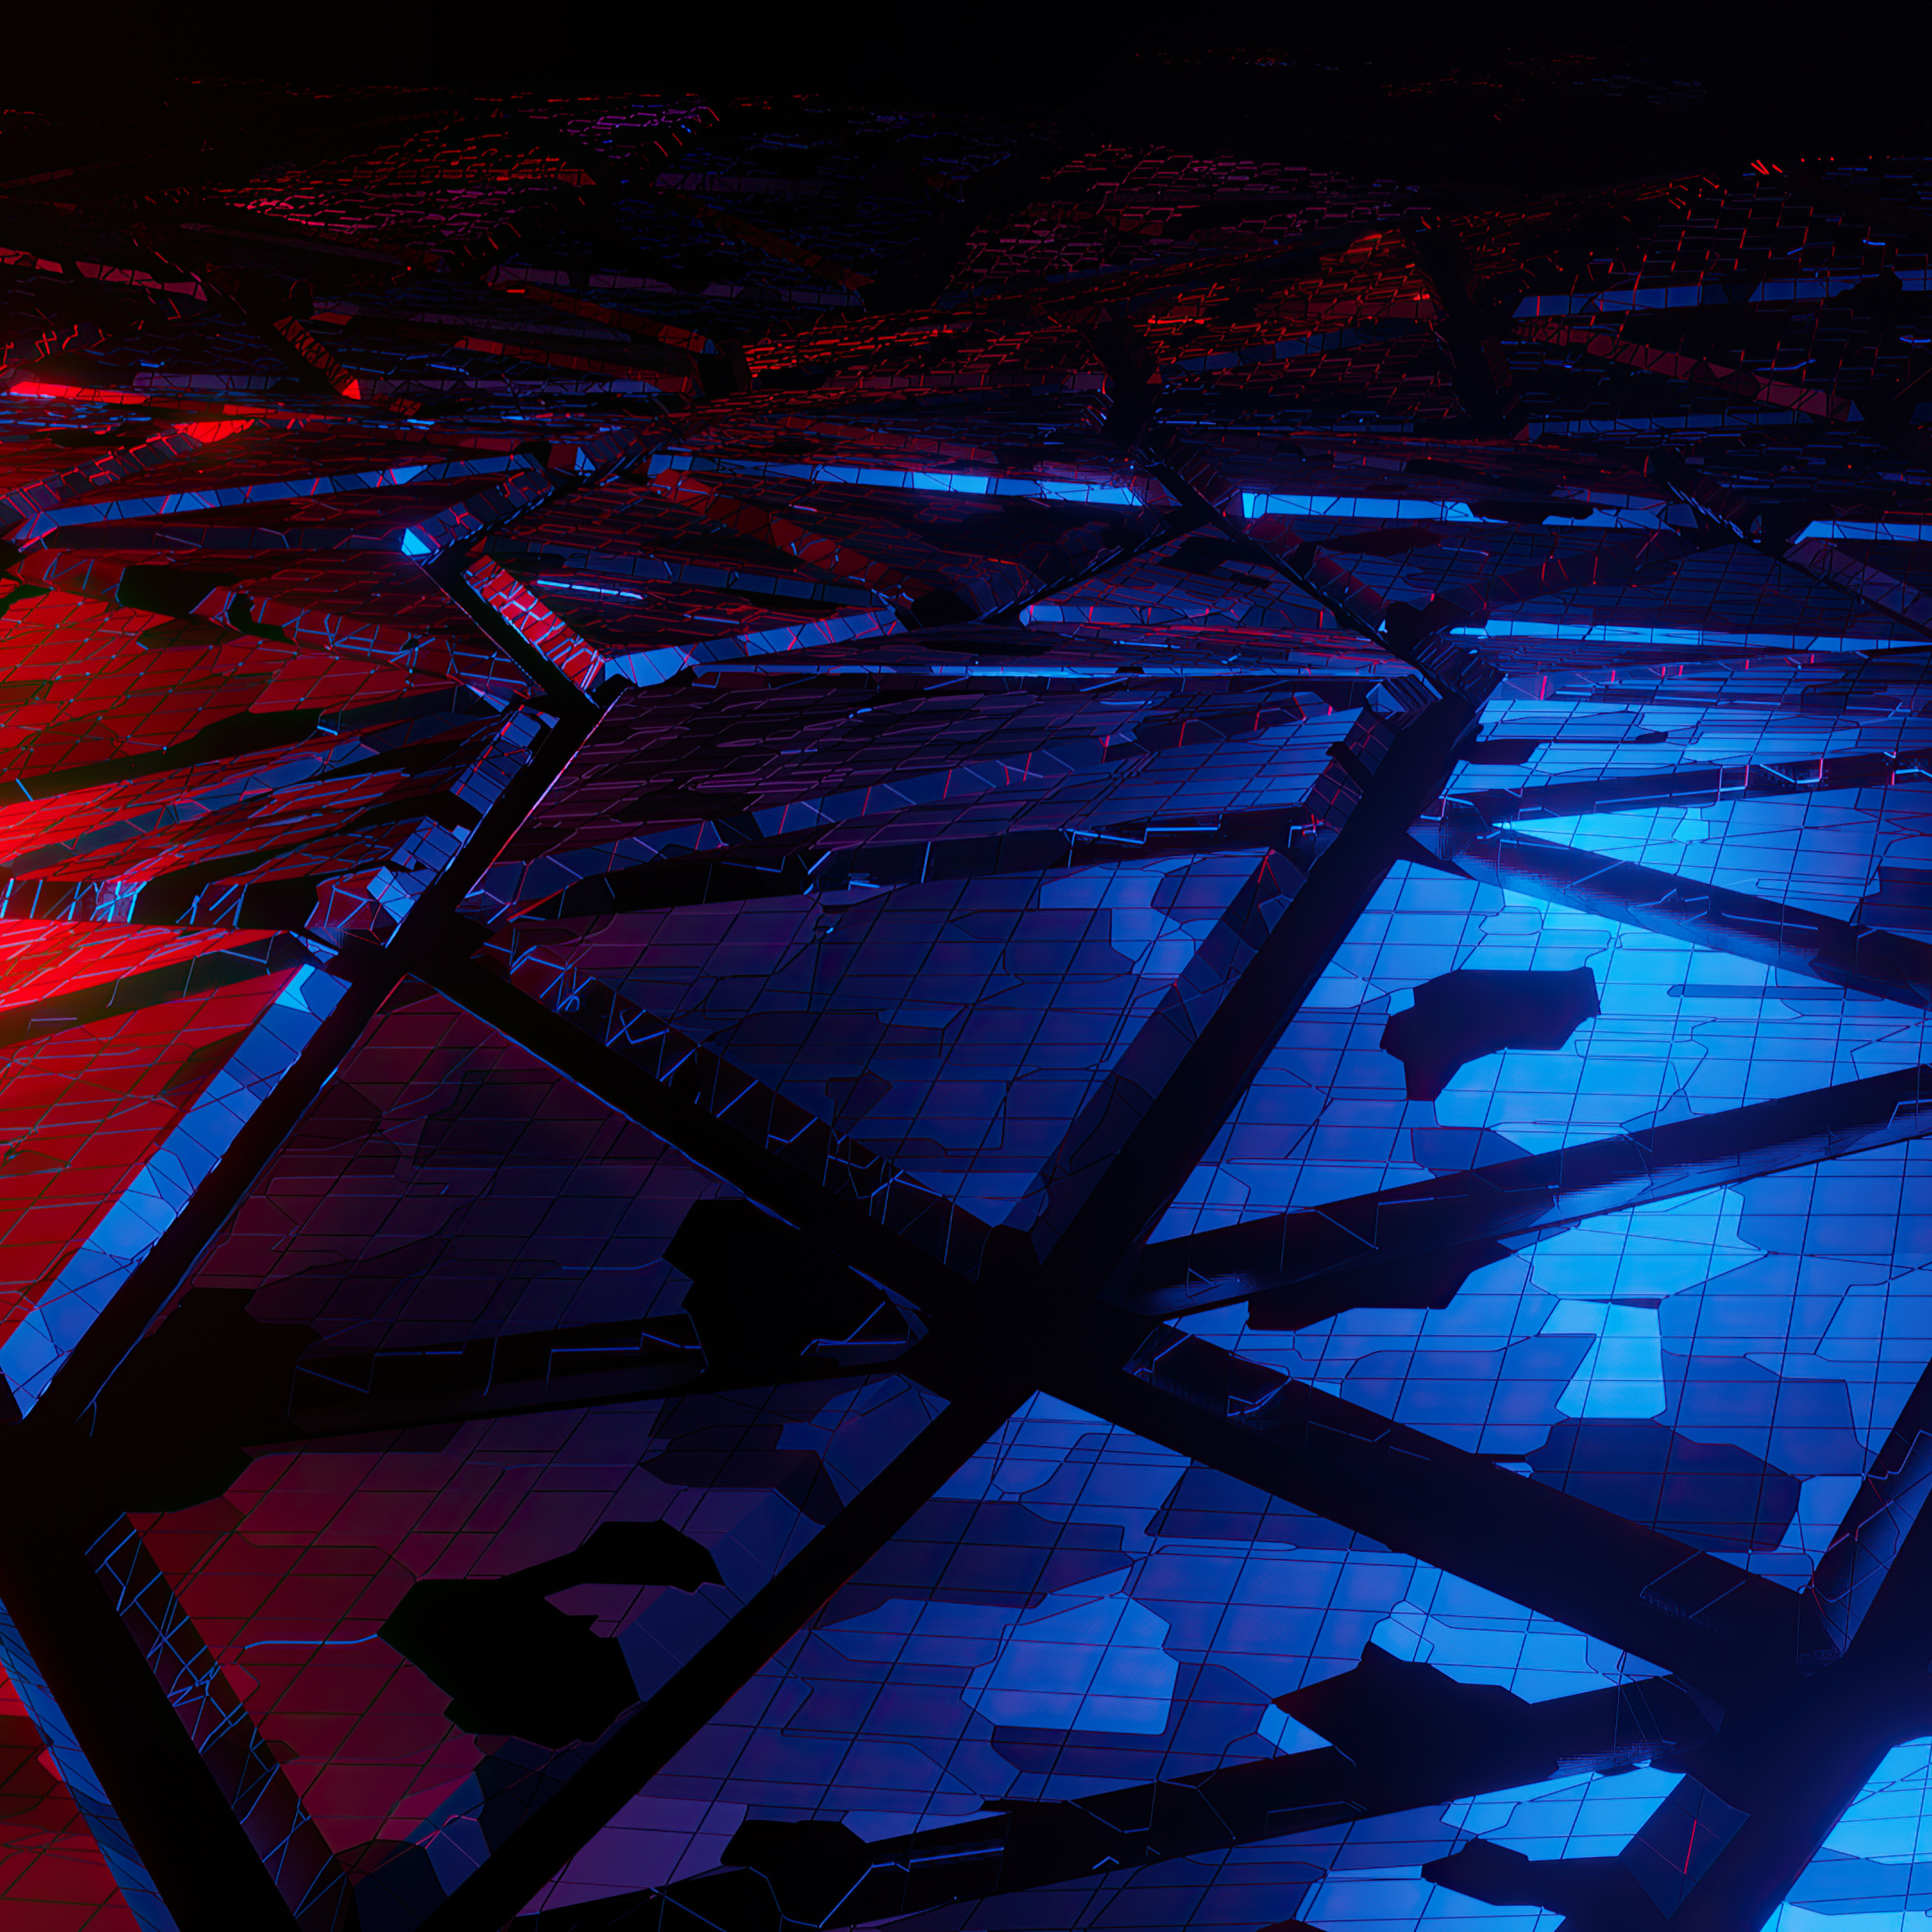 2932x2932 Red And Blue Broken Abstract 4k Ipad Pro Retina